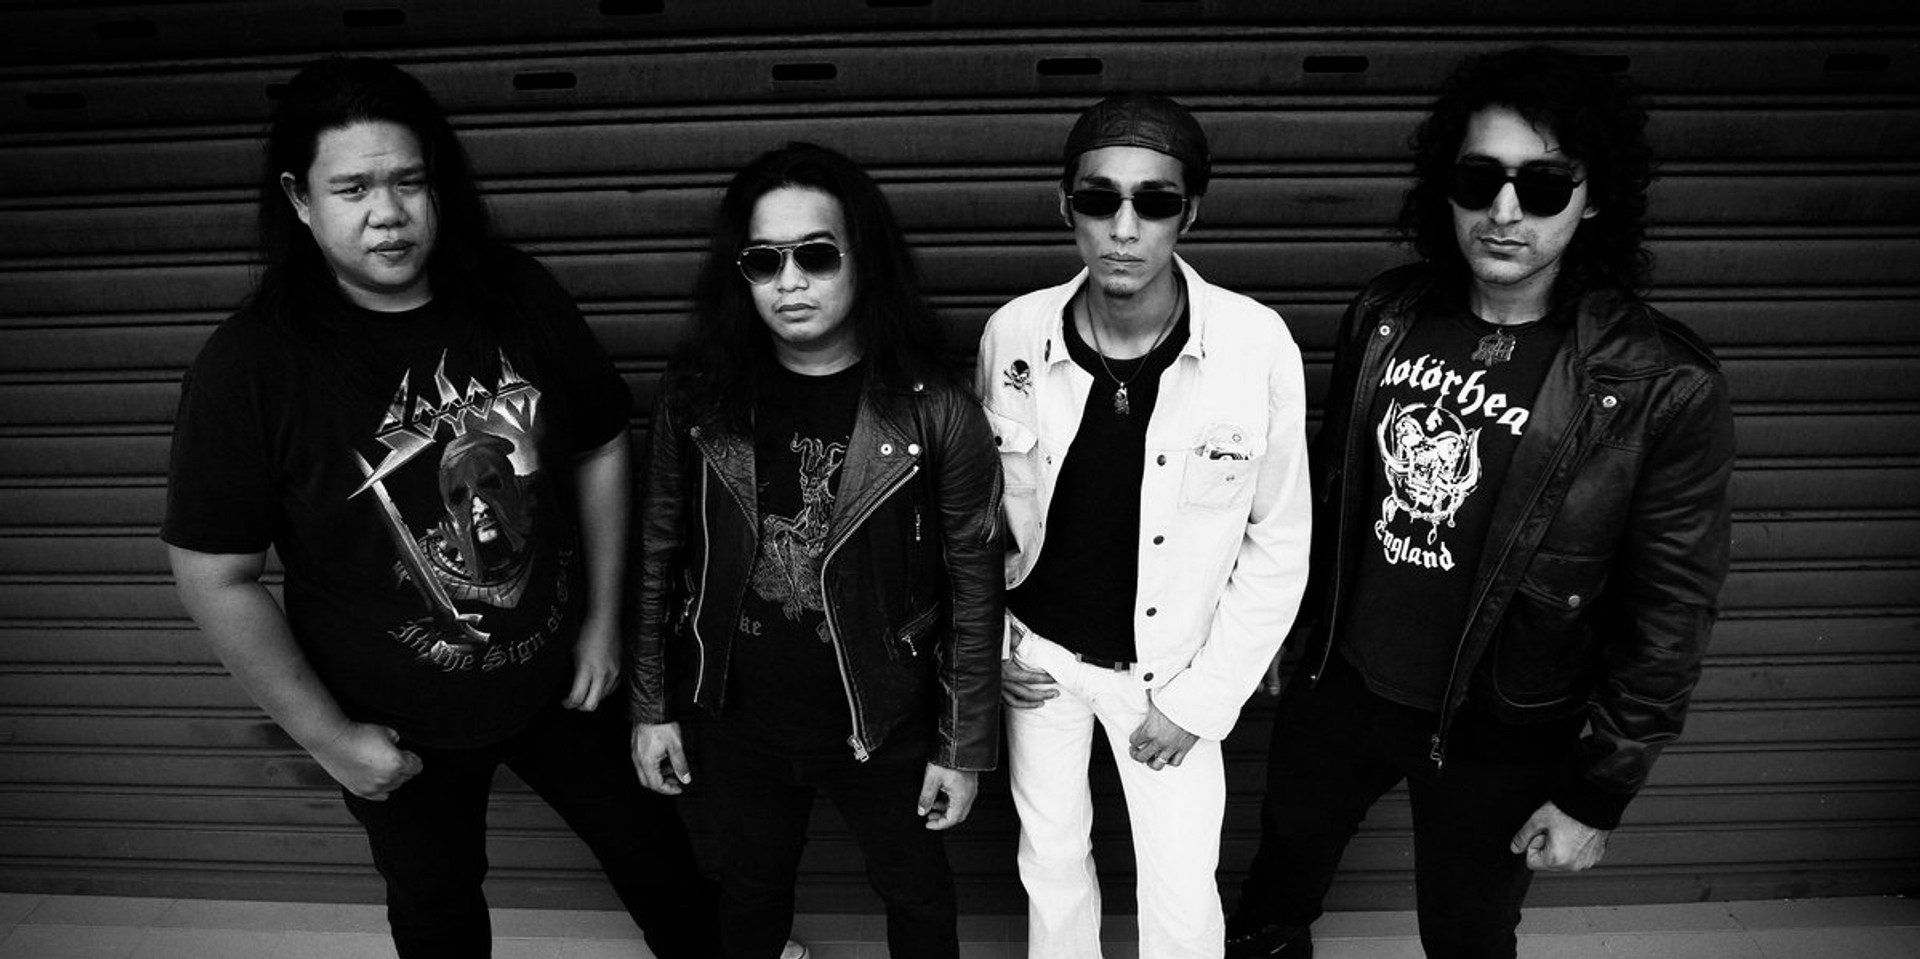 Thrash metal band Bloodstone has a bone to pick with the world